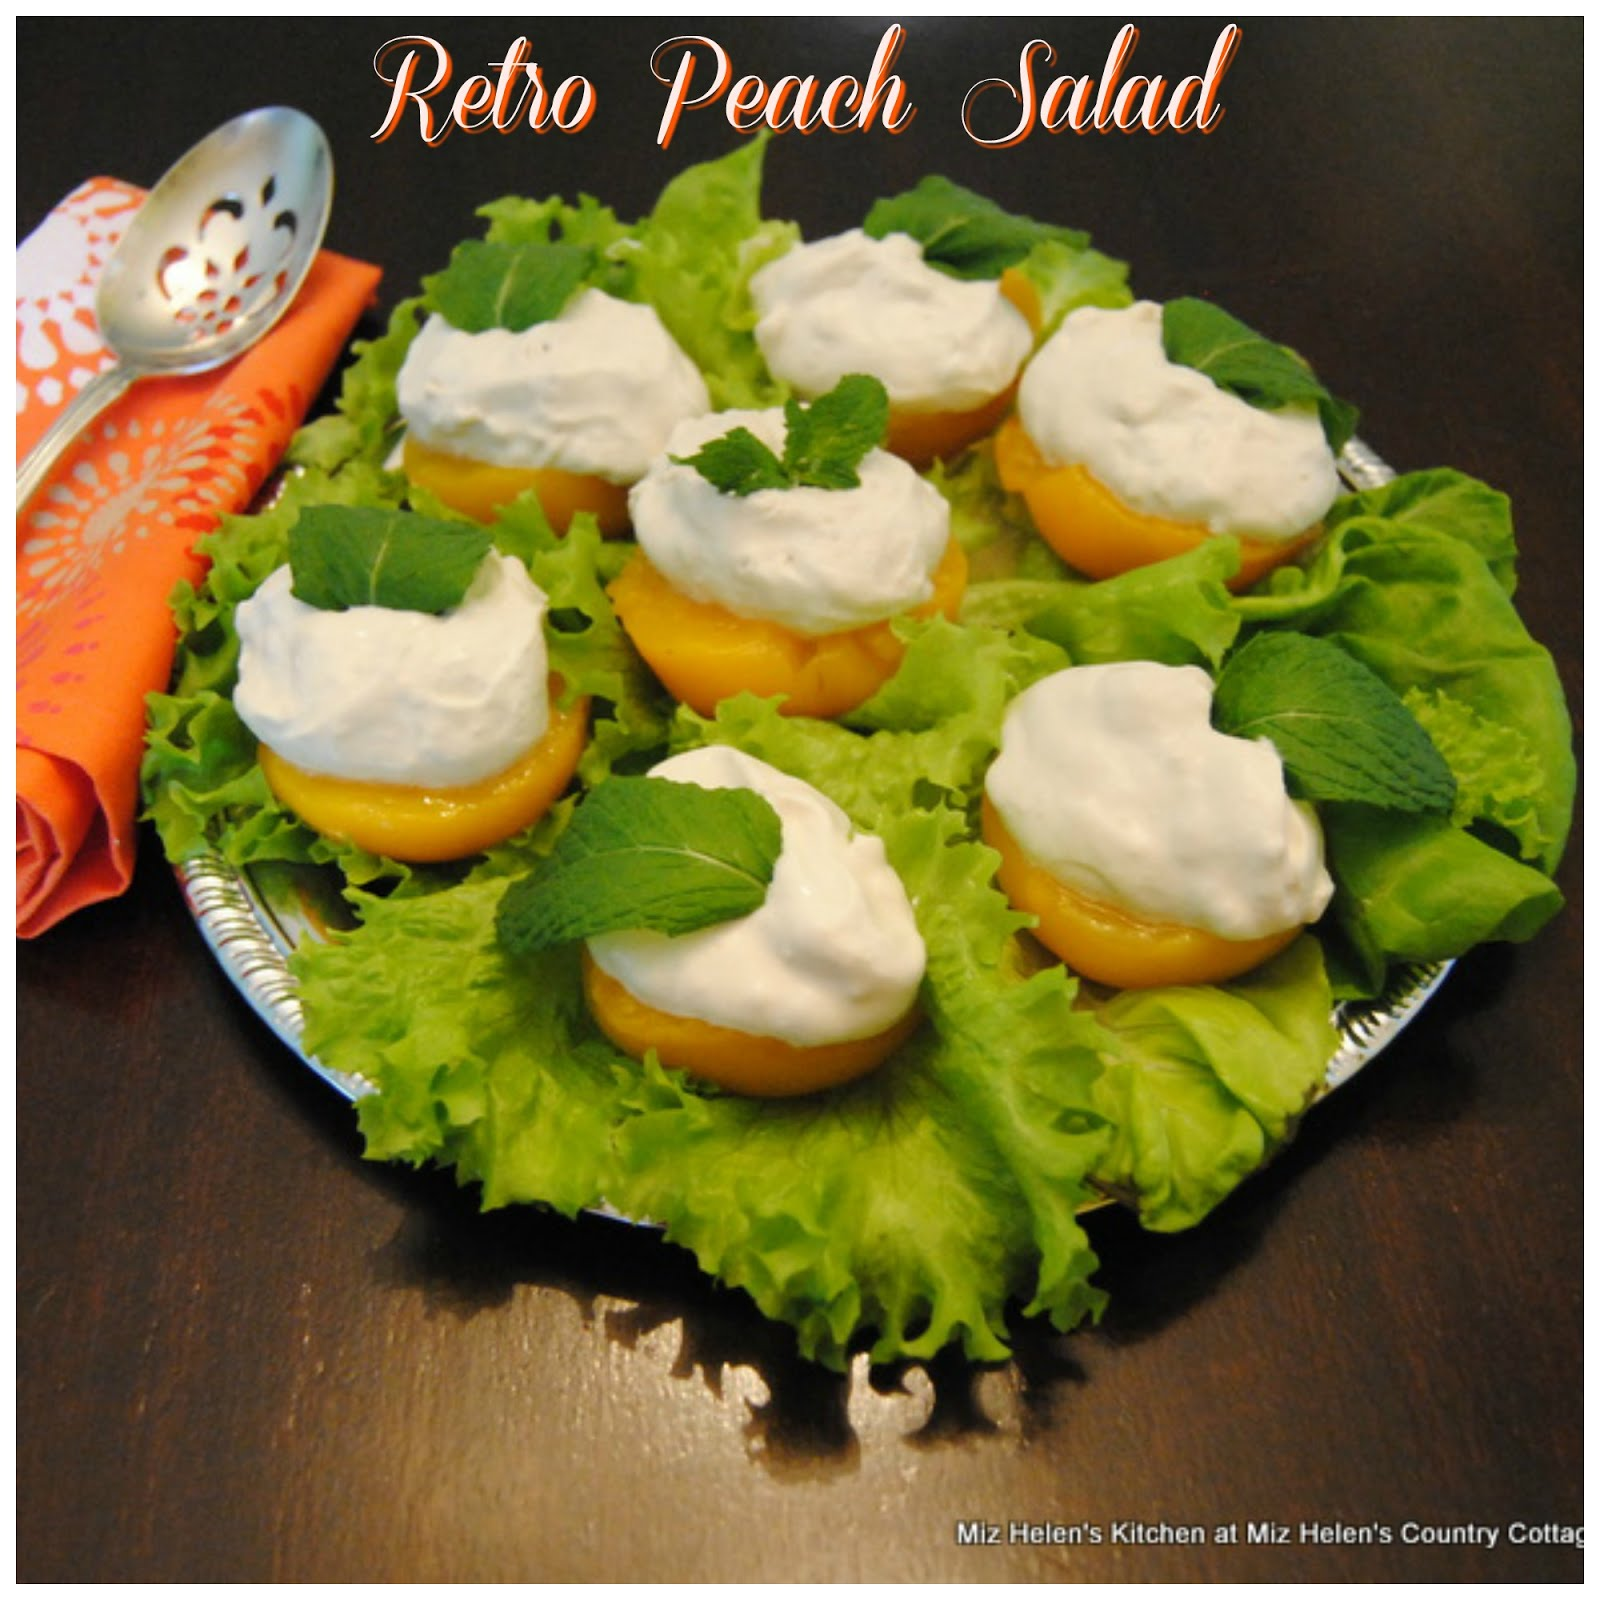 Retro Peach Salad